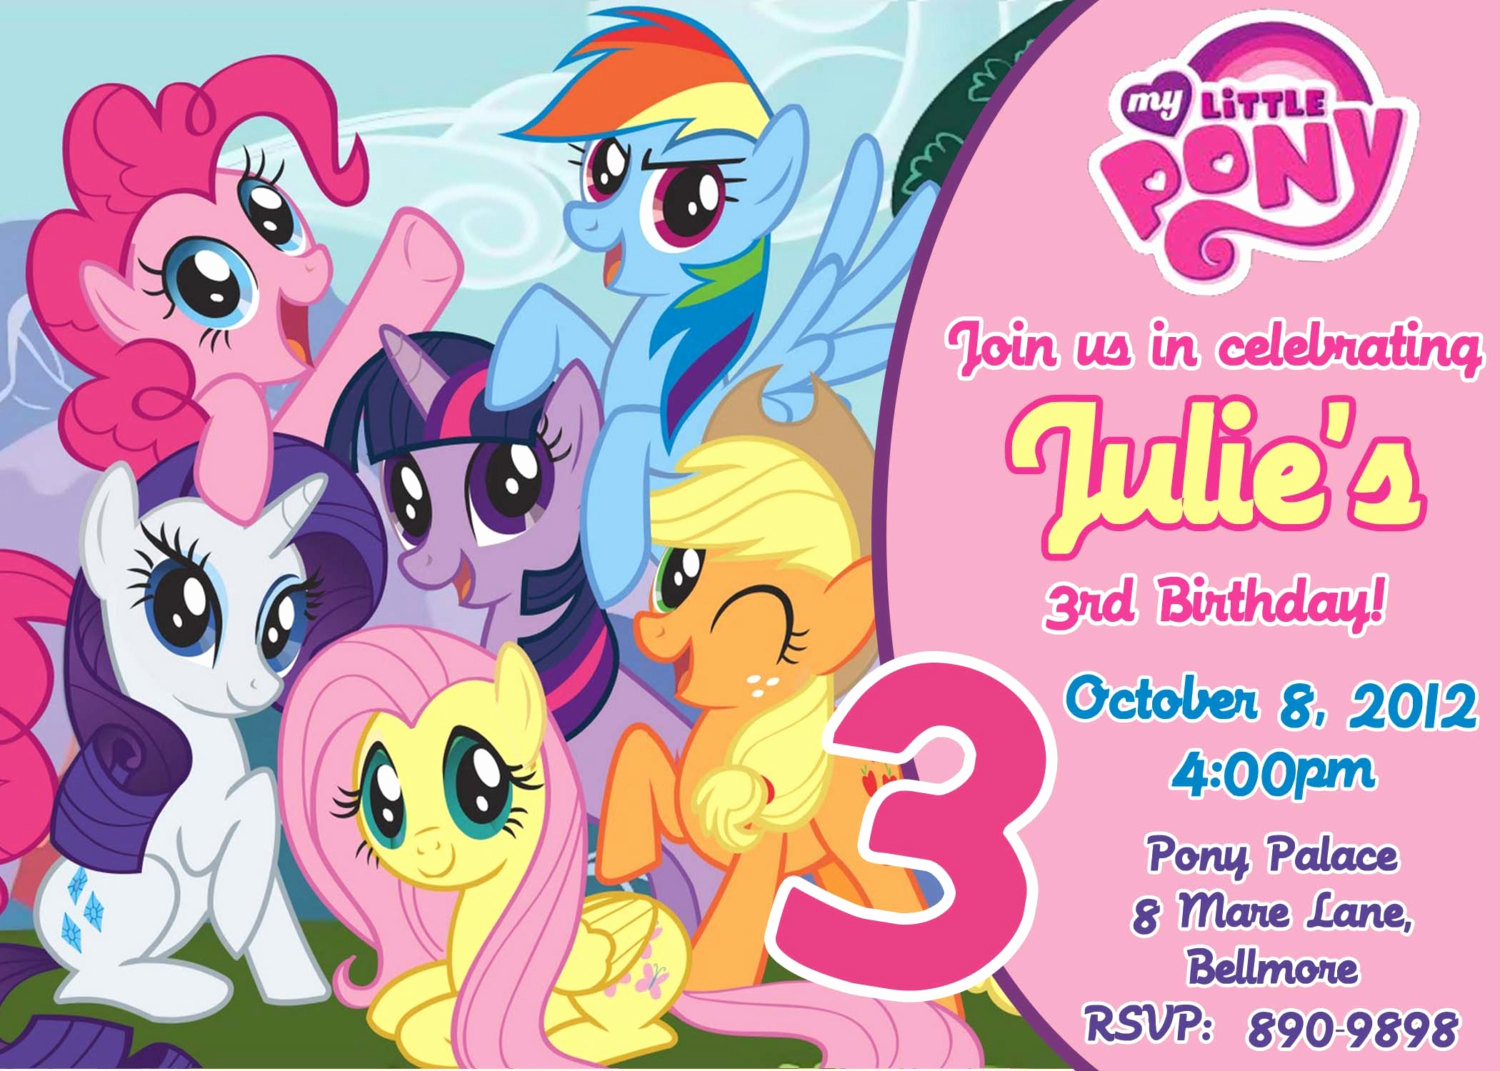 My Little Pony Birthday Invitation Fresh Custom Photo Invitations My Little Pony Birthday Invitation